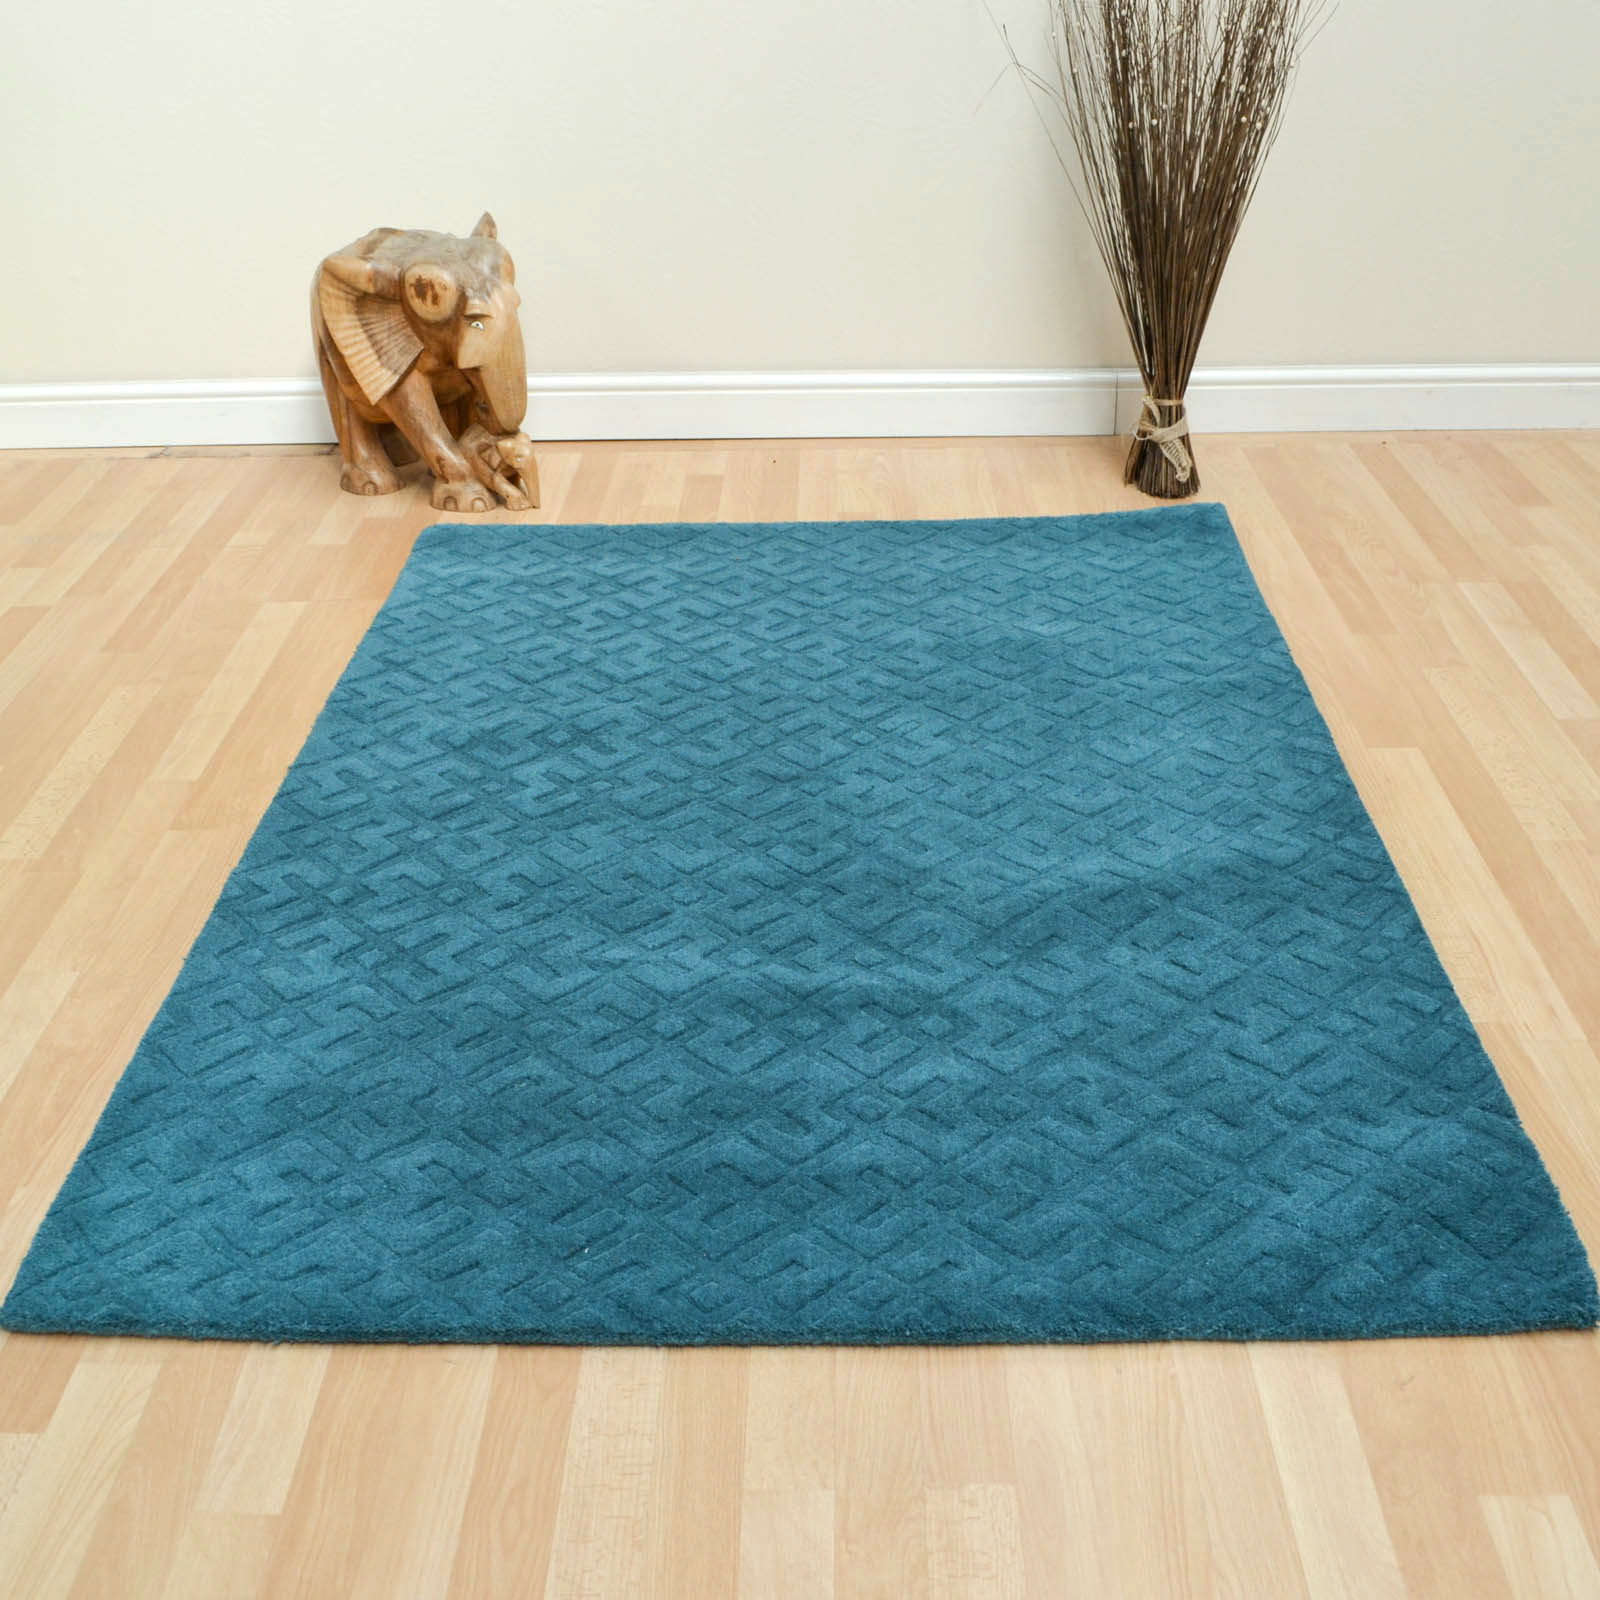 Manga Rugs in Teal